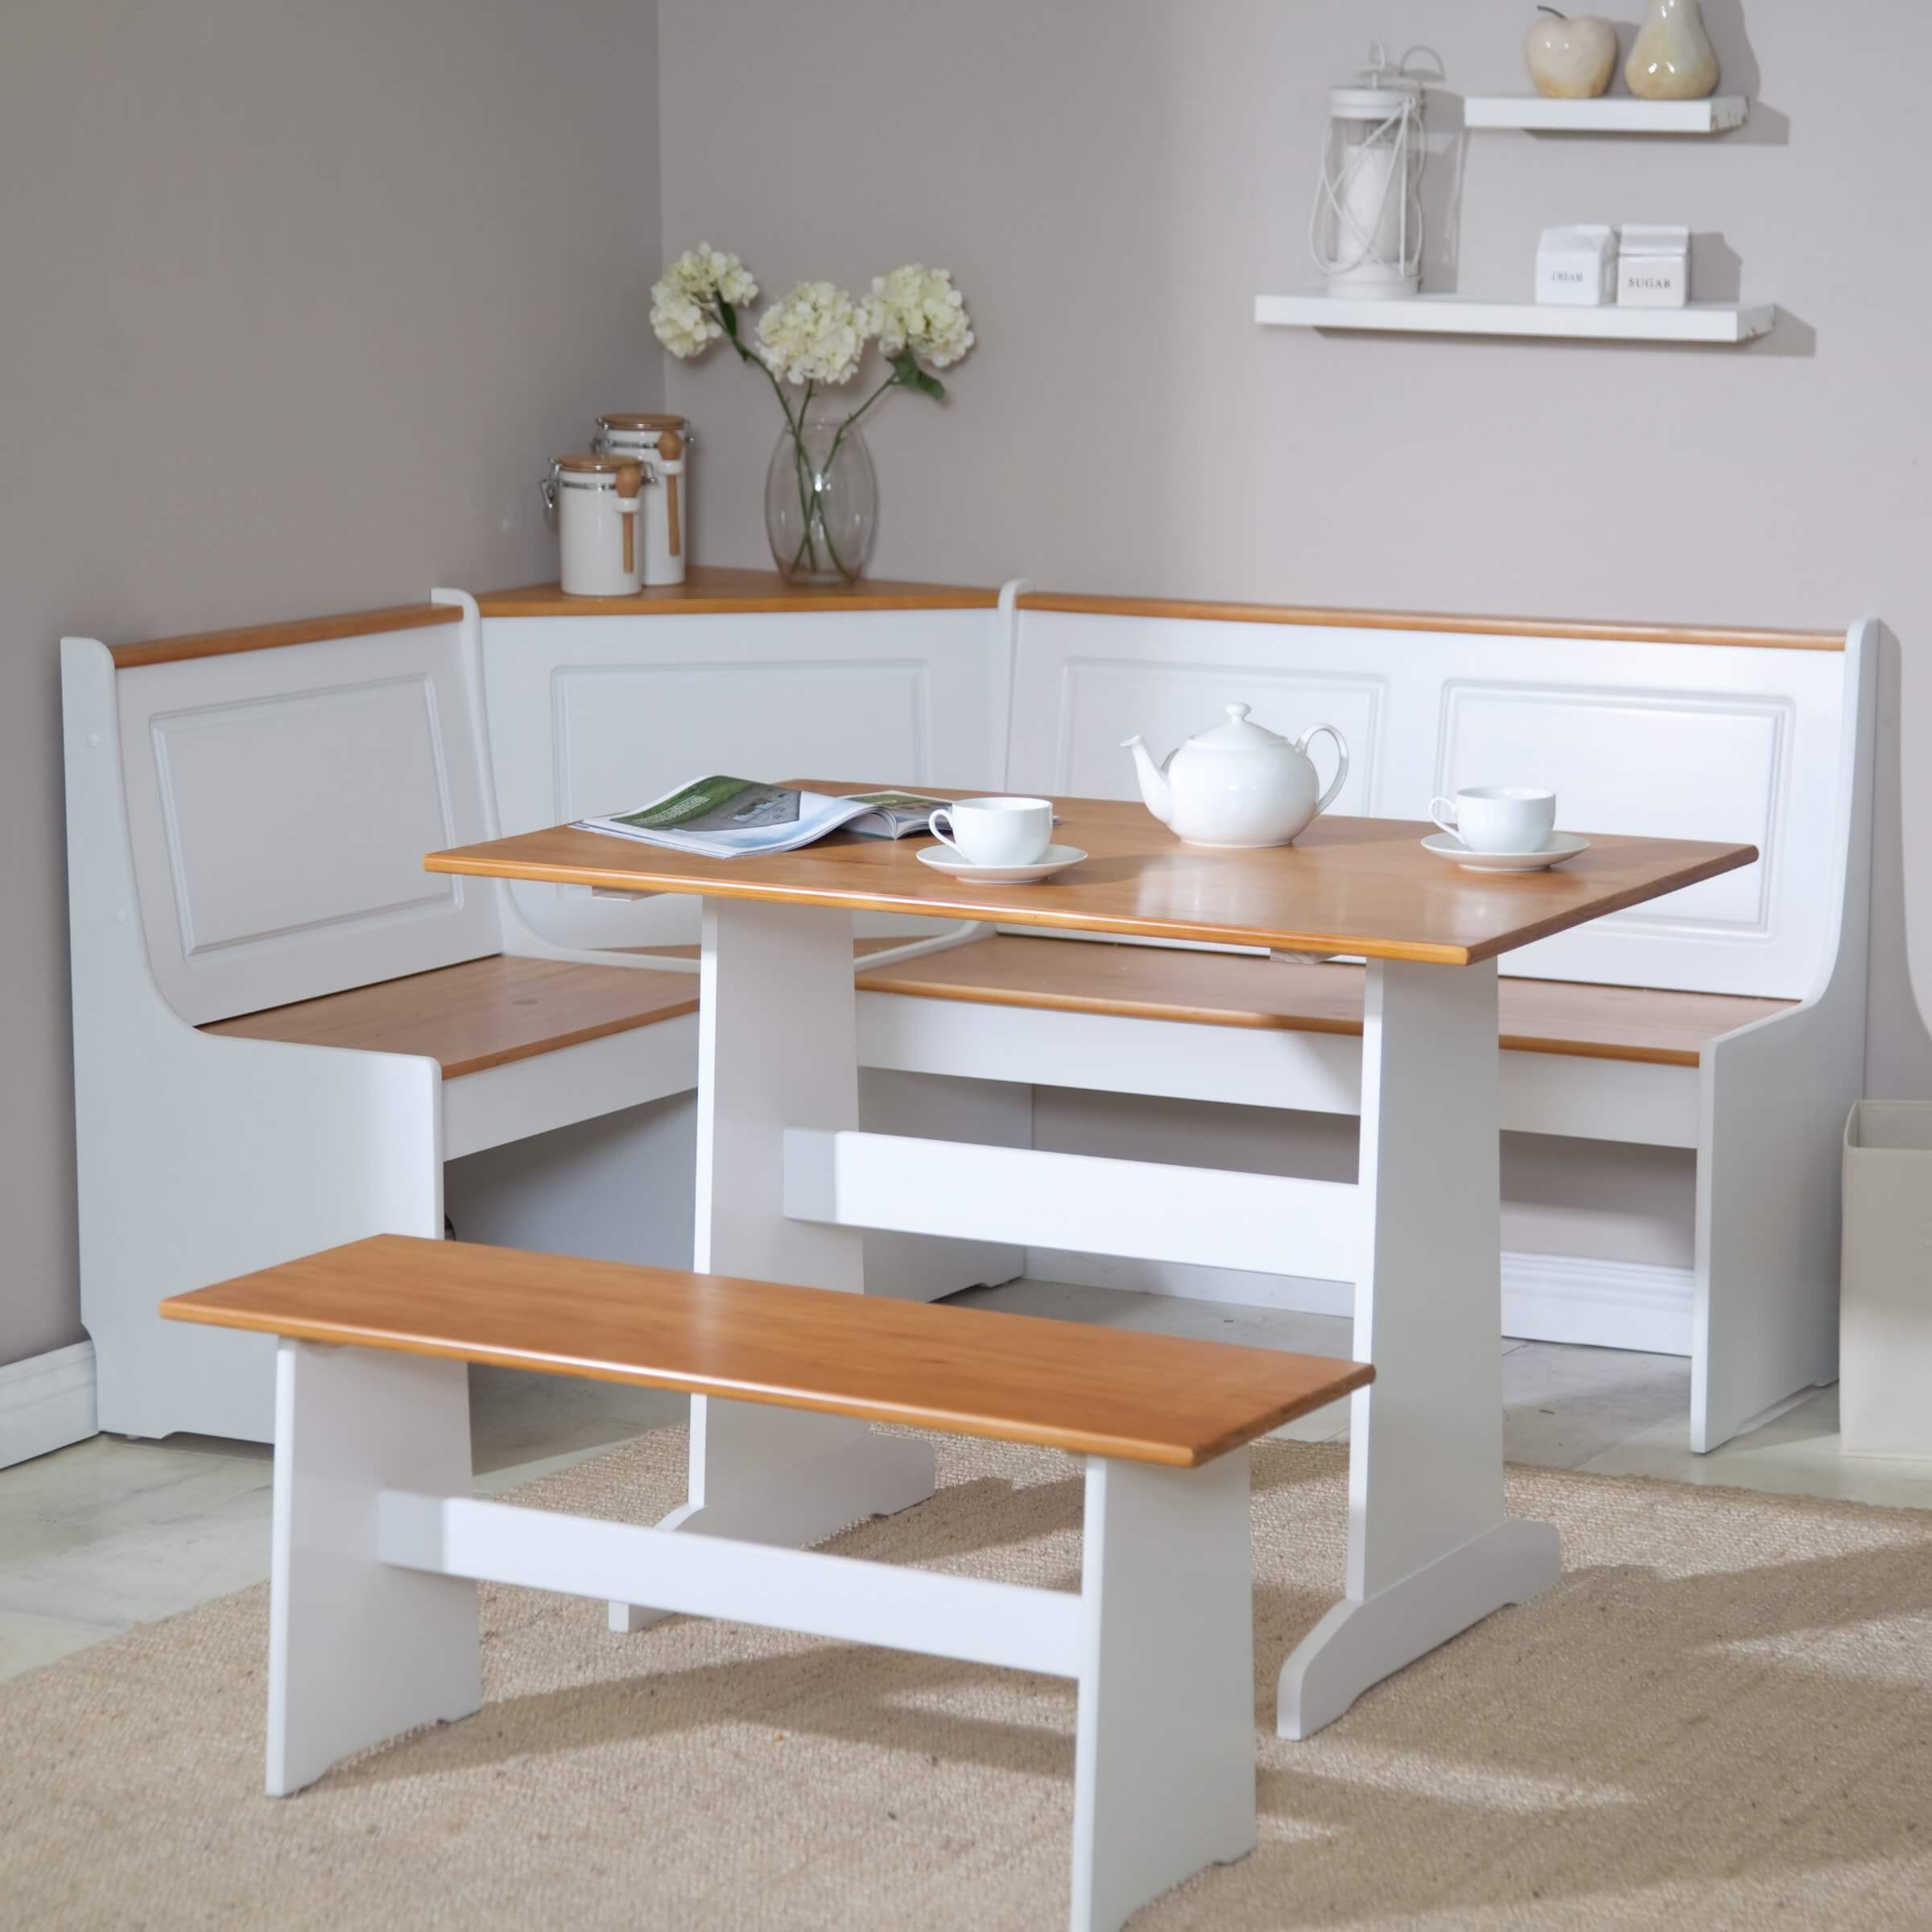 White Wood Kitchen Table Sets 23 Space Saving Corner Breakfast Nook Furniture Sets Booths